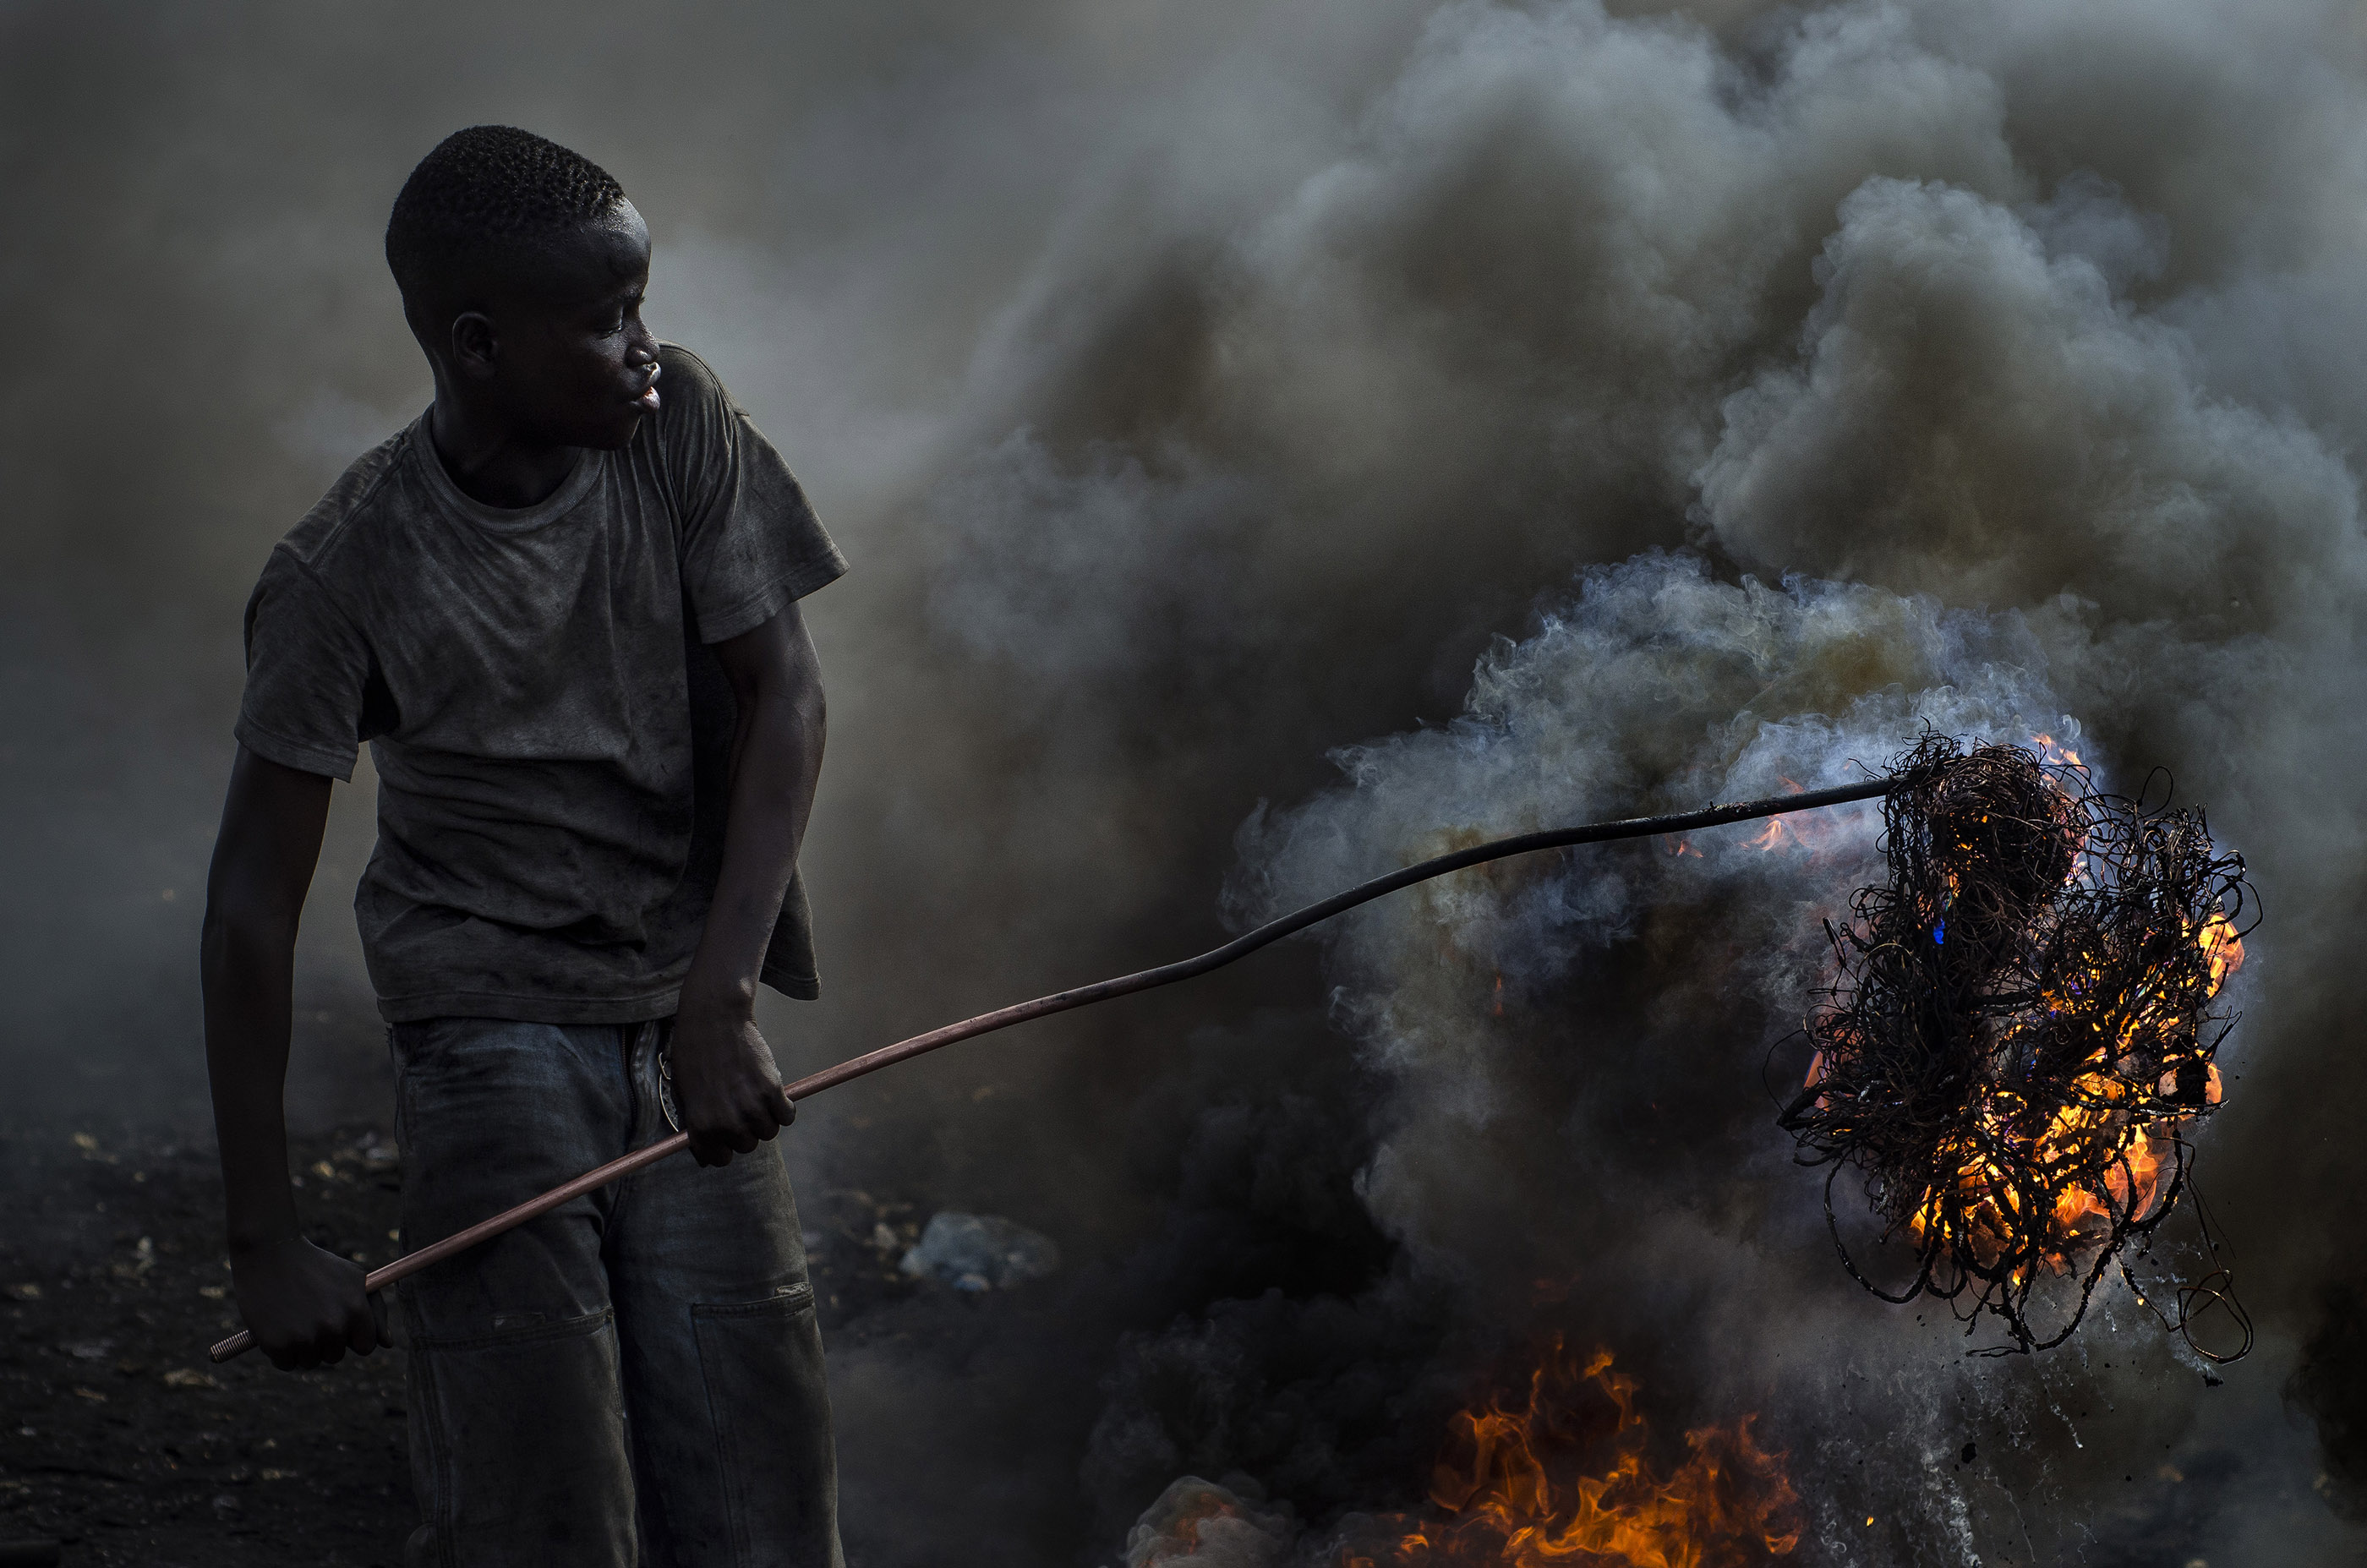 A young man burns cables to retrieve the copper within at an e-waste dump in Agbogbloshie, Ghana.